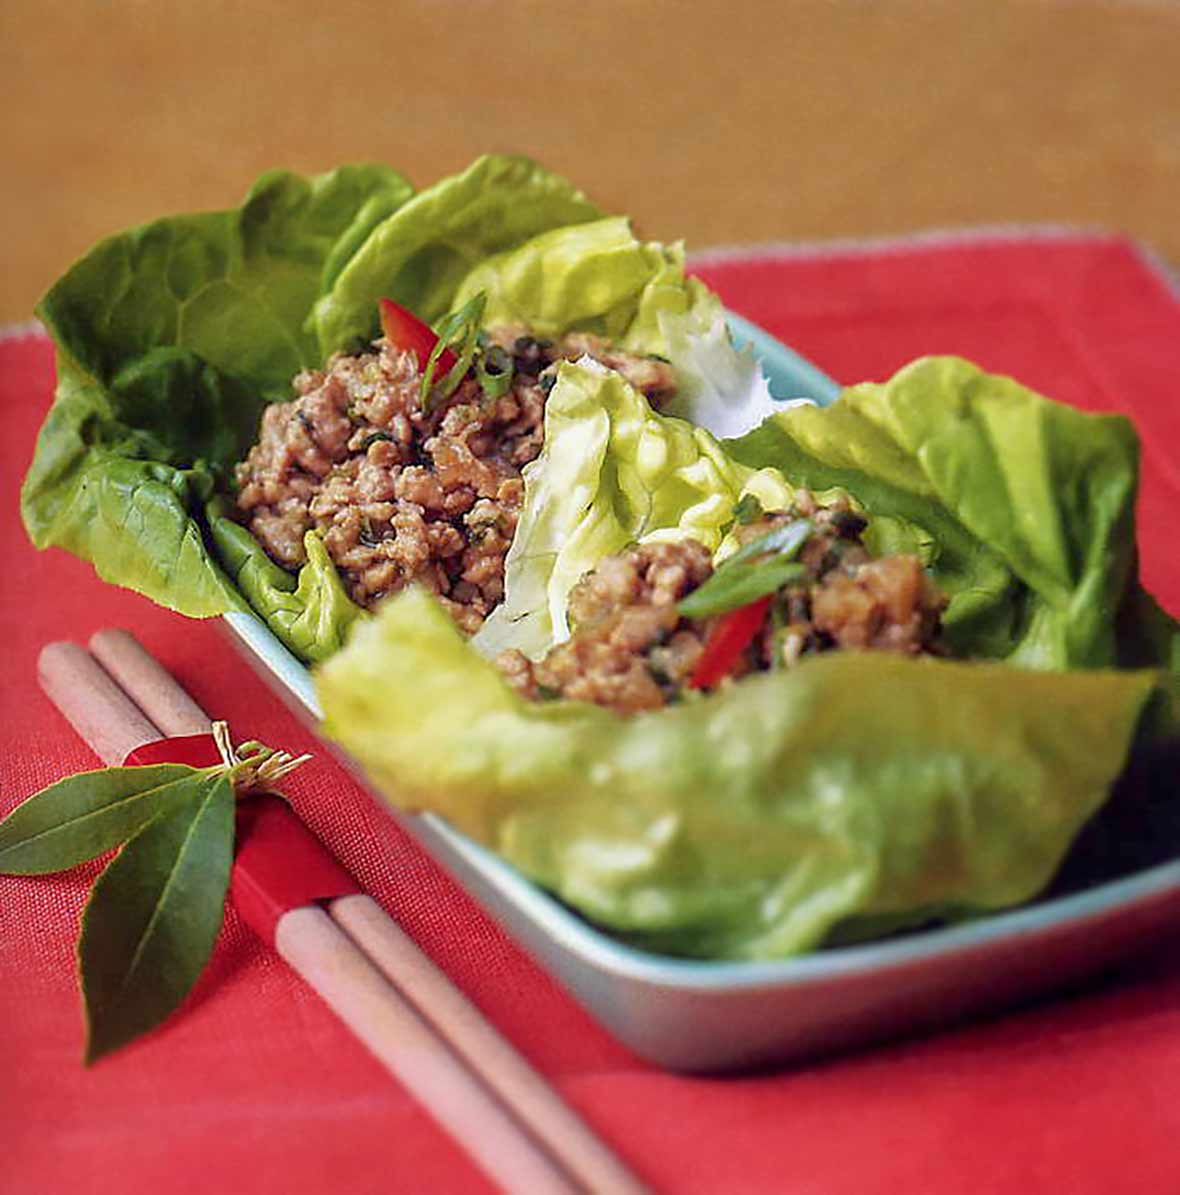 Butter lettuce leaves cradling ground dark chicken in bowl, chop sticks on the side